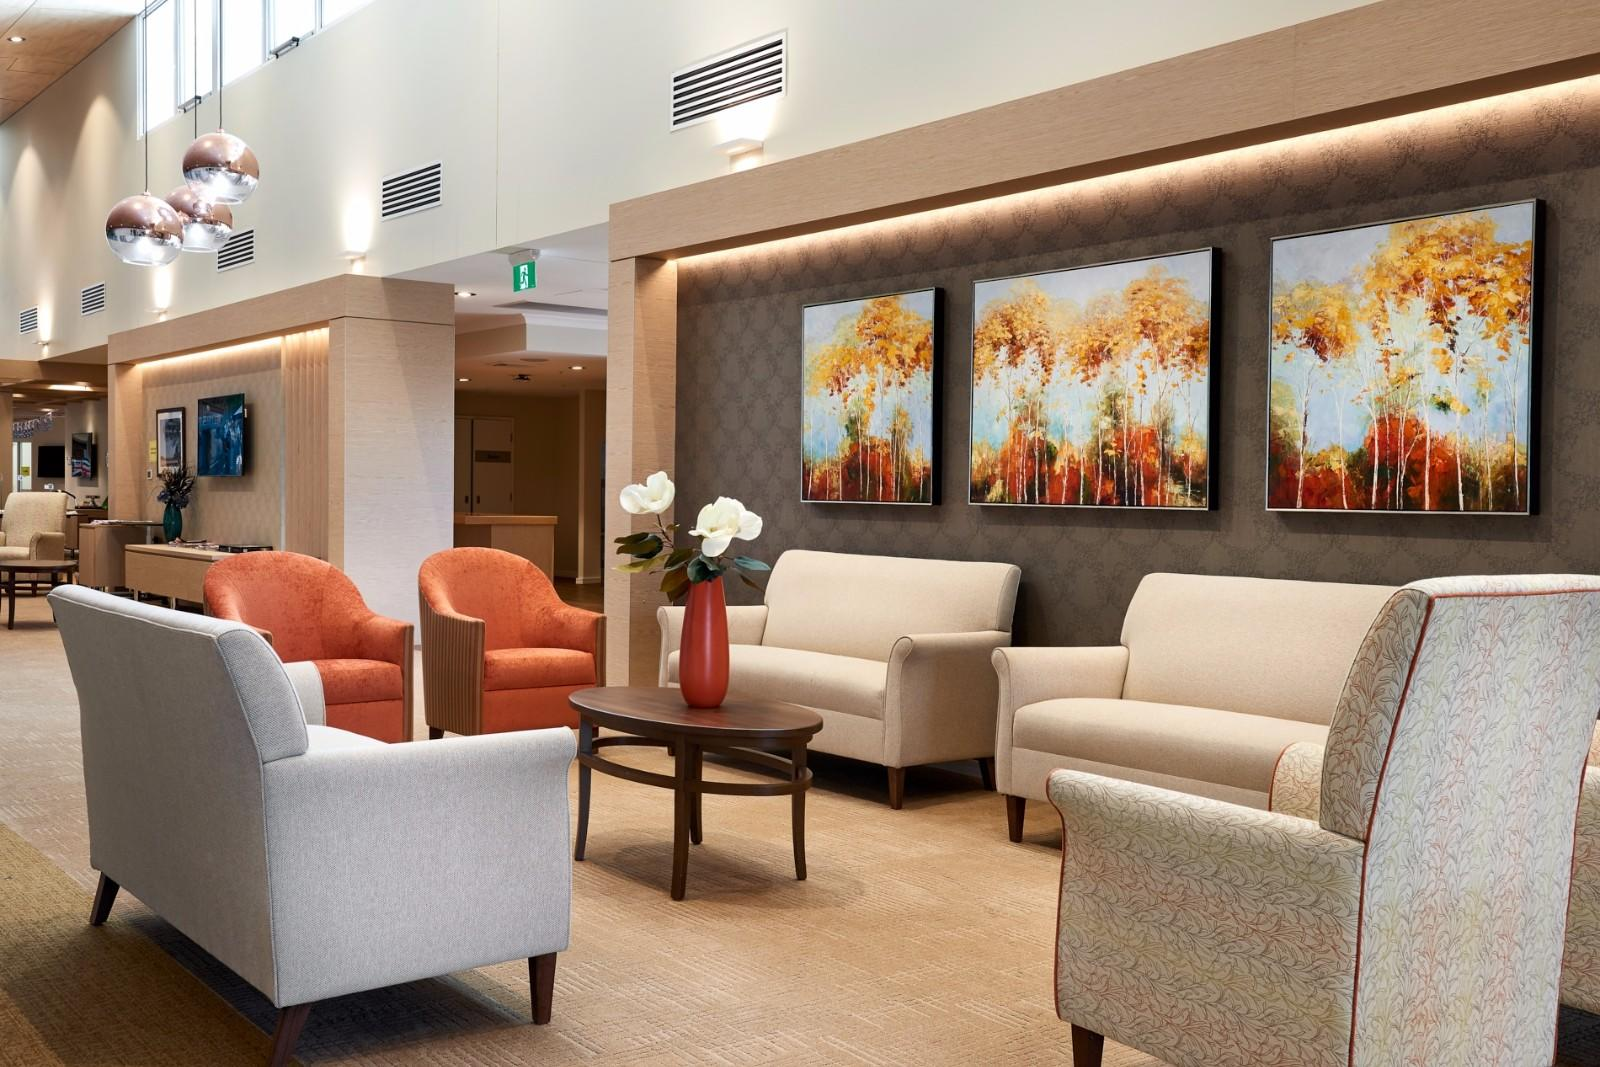 YSK Furniture factory price aged care furniture homes facility community-1